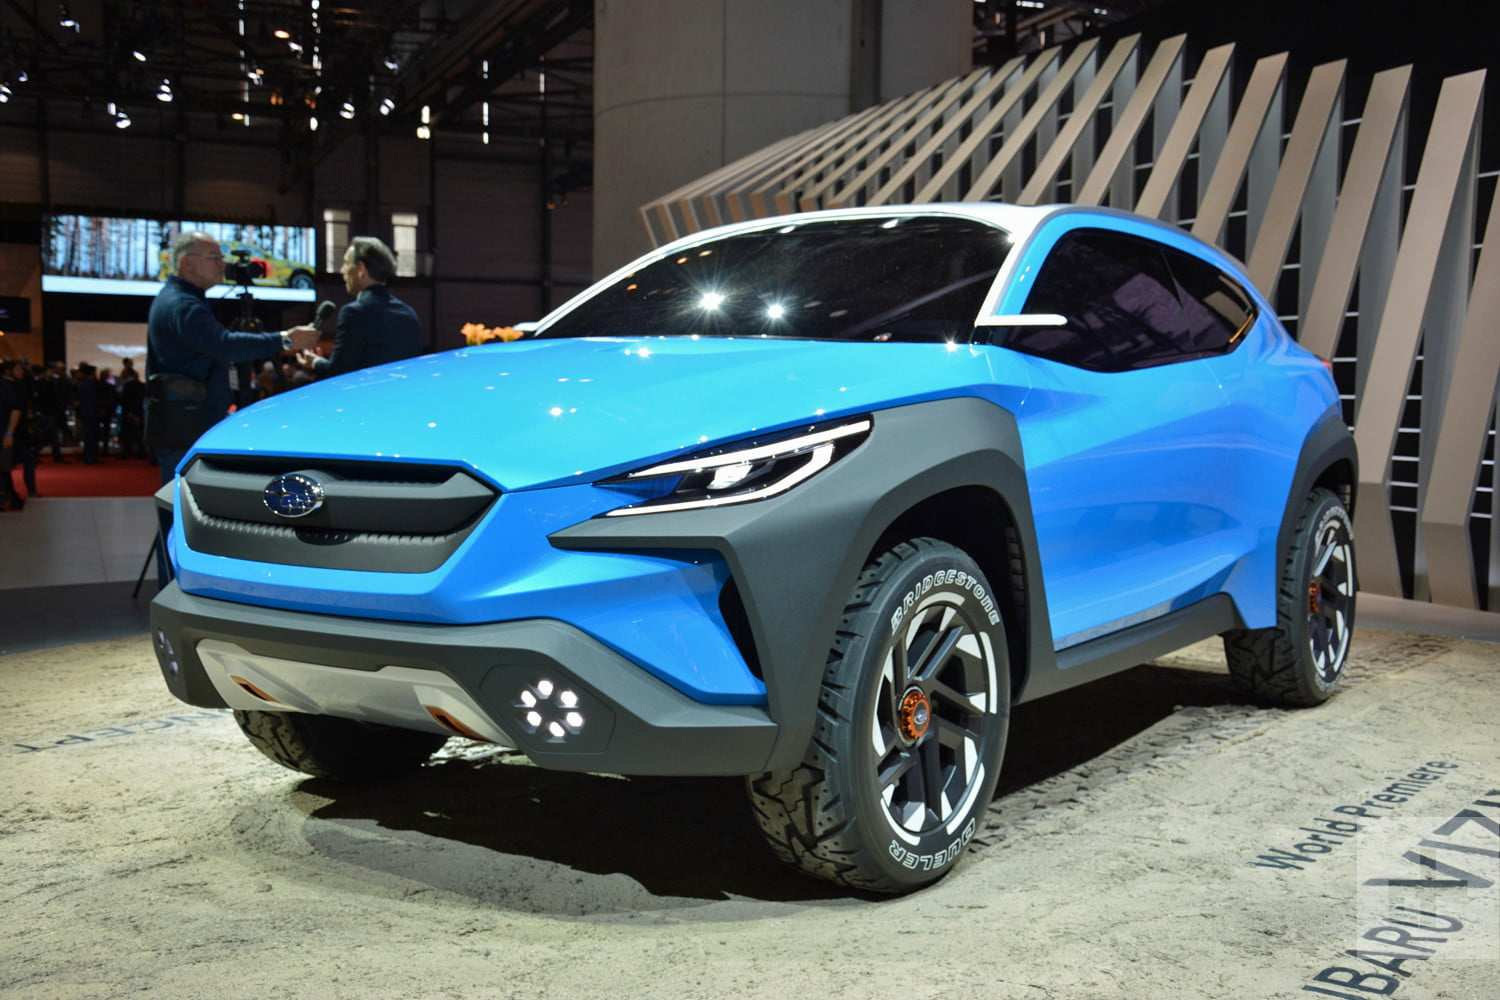 68 The Best Subaru Electric Car 2019 History